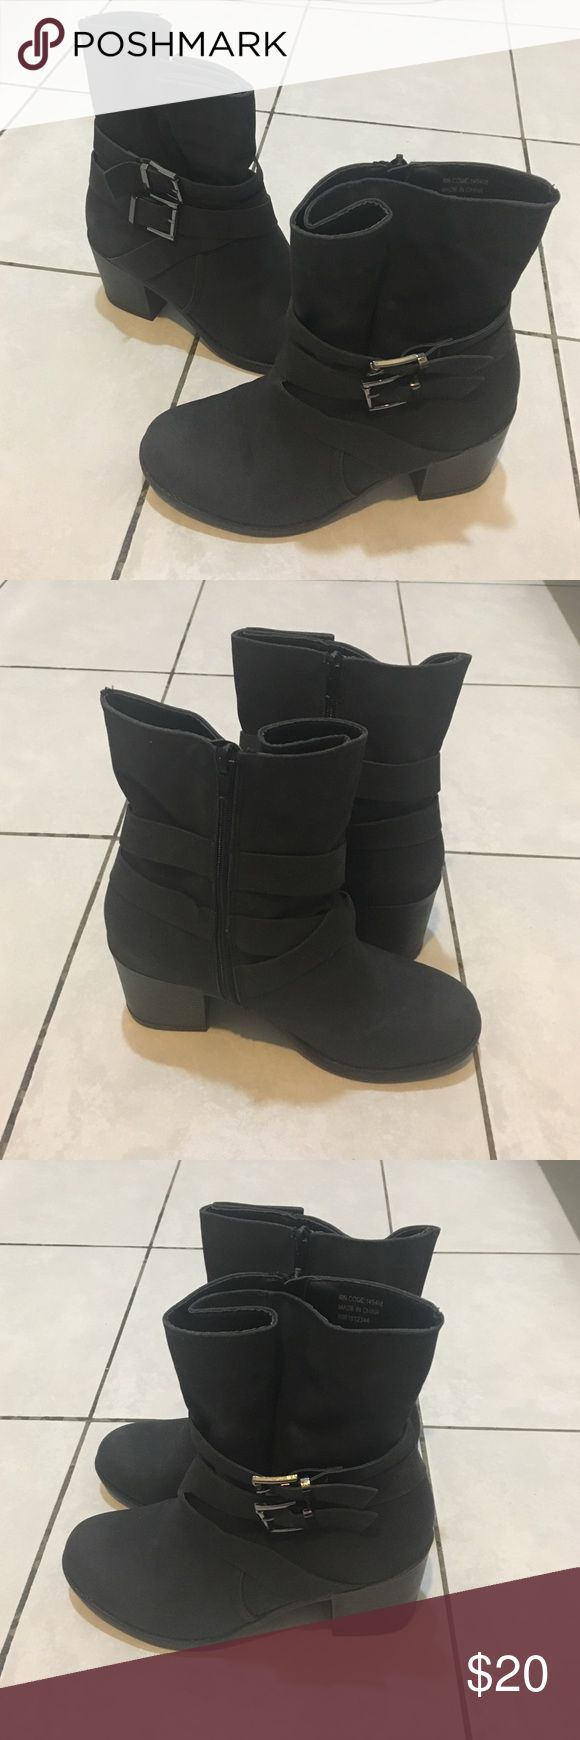 Black heeled boots, size 9 Beautiful black suede boots. Size 9, great condition. Wide fit but fits a smaller calf as well! Primark Shoes Ankle Boots & Booties